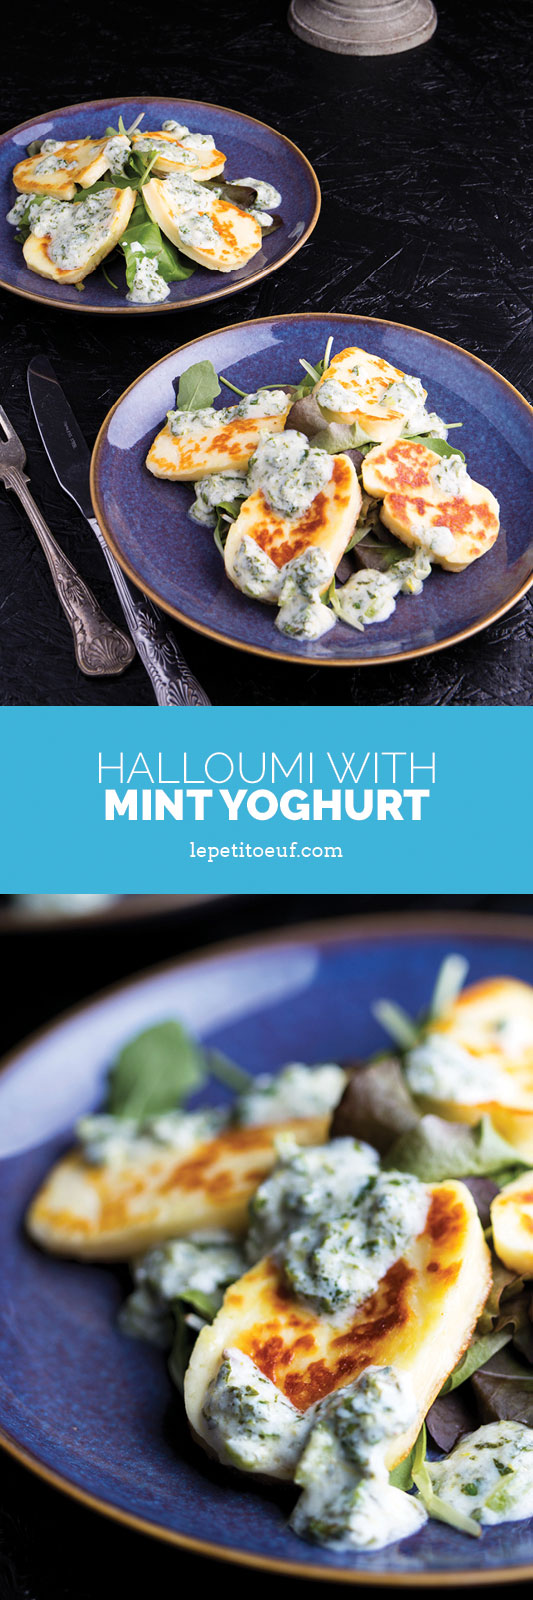 Grilled halloumi with mint yoghurt